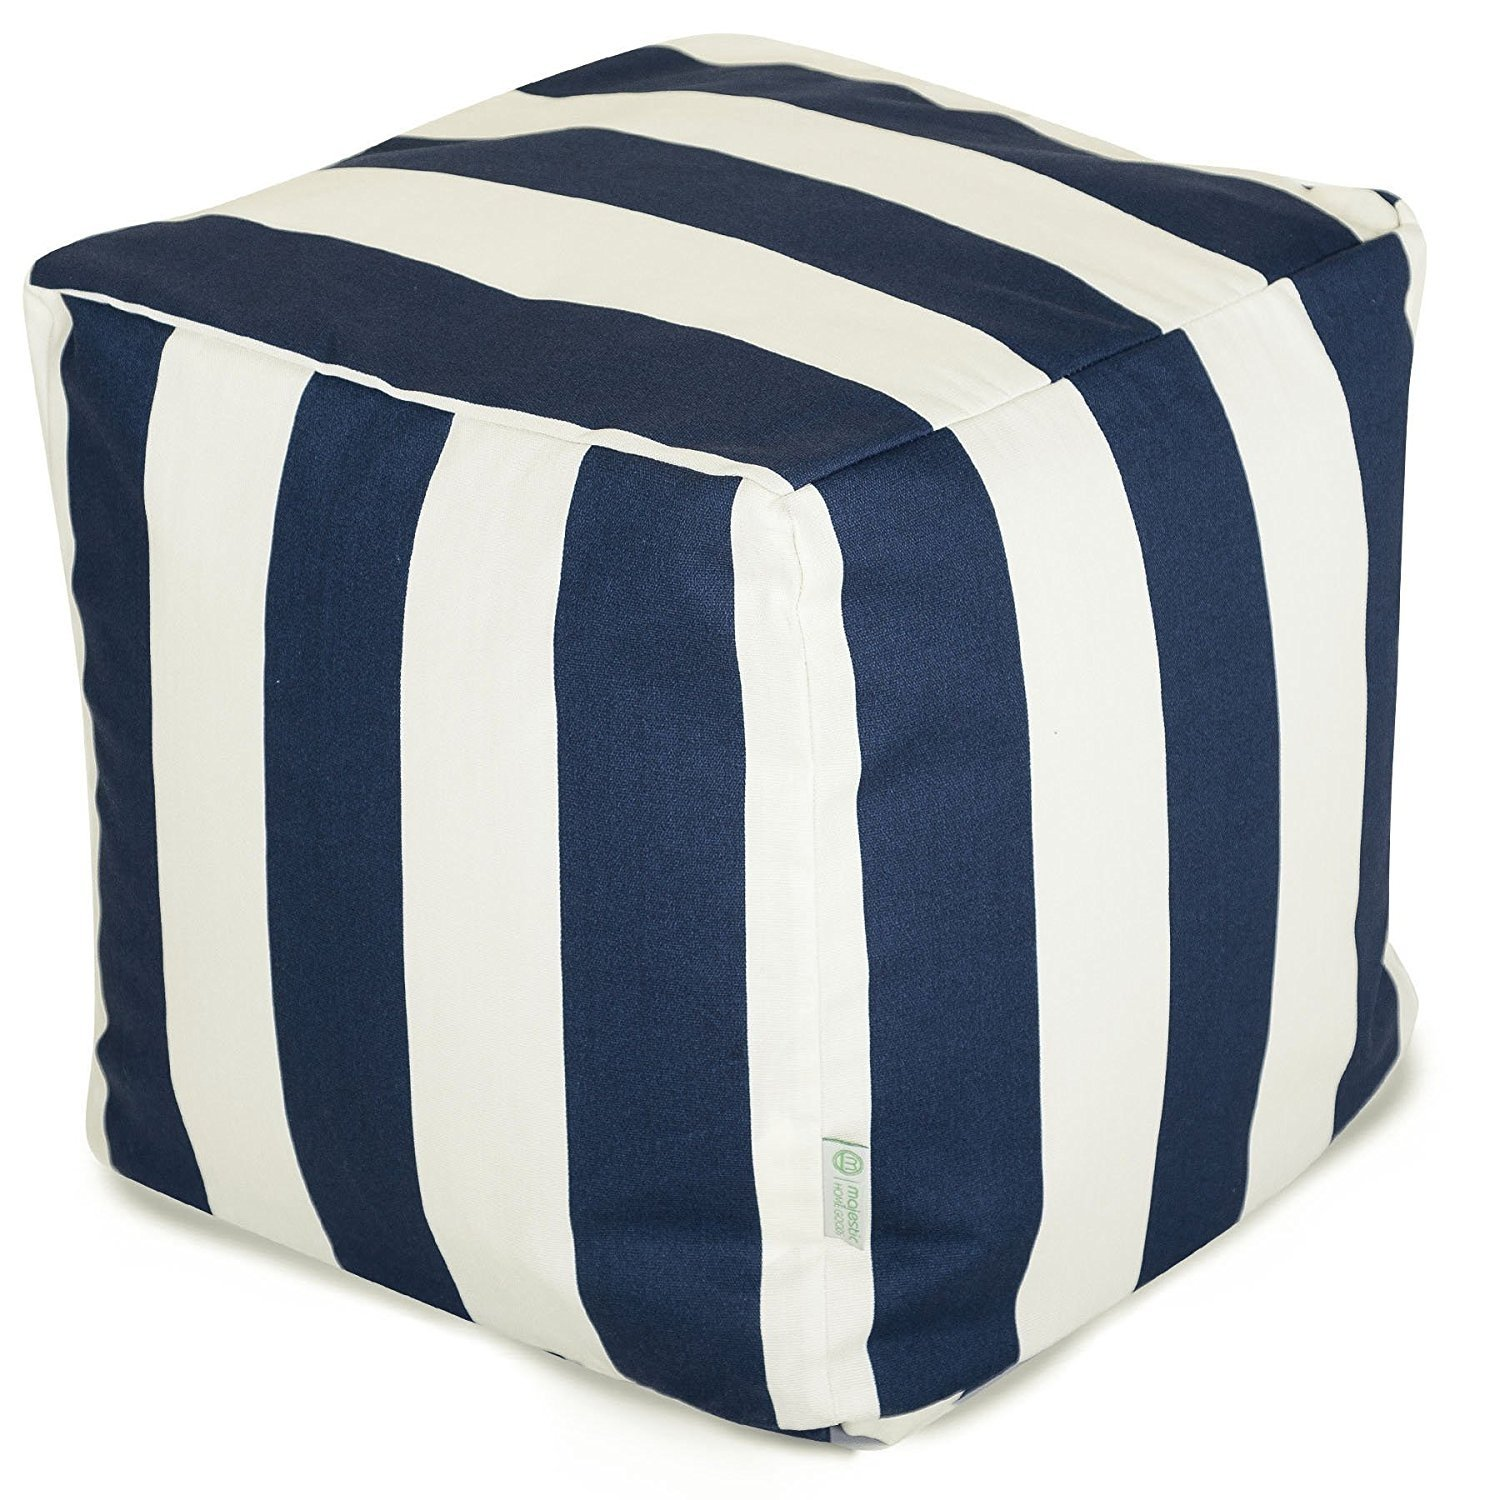 Majestic Home Goods Stripes Indoor Outdoor Bean Bag